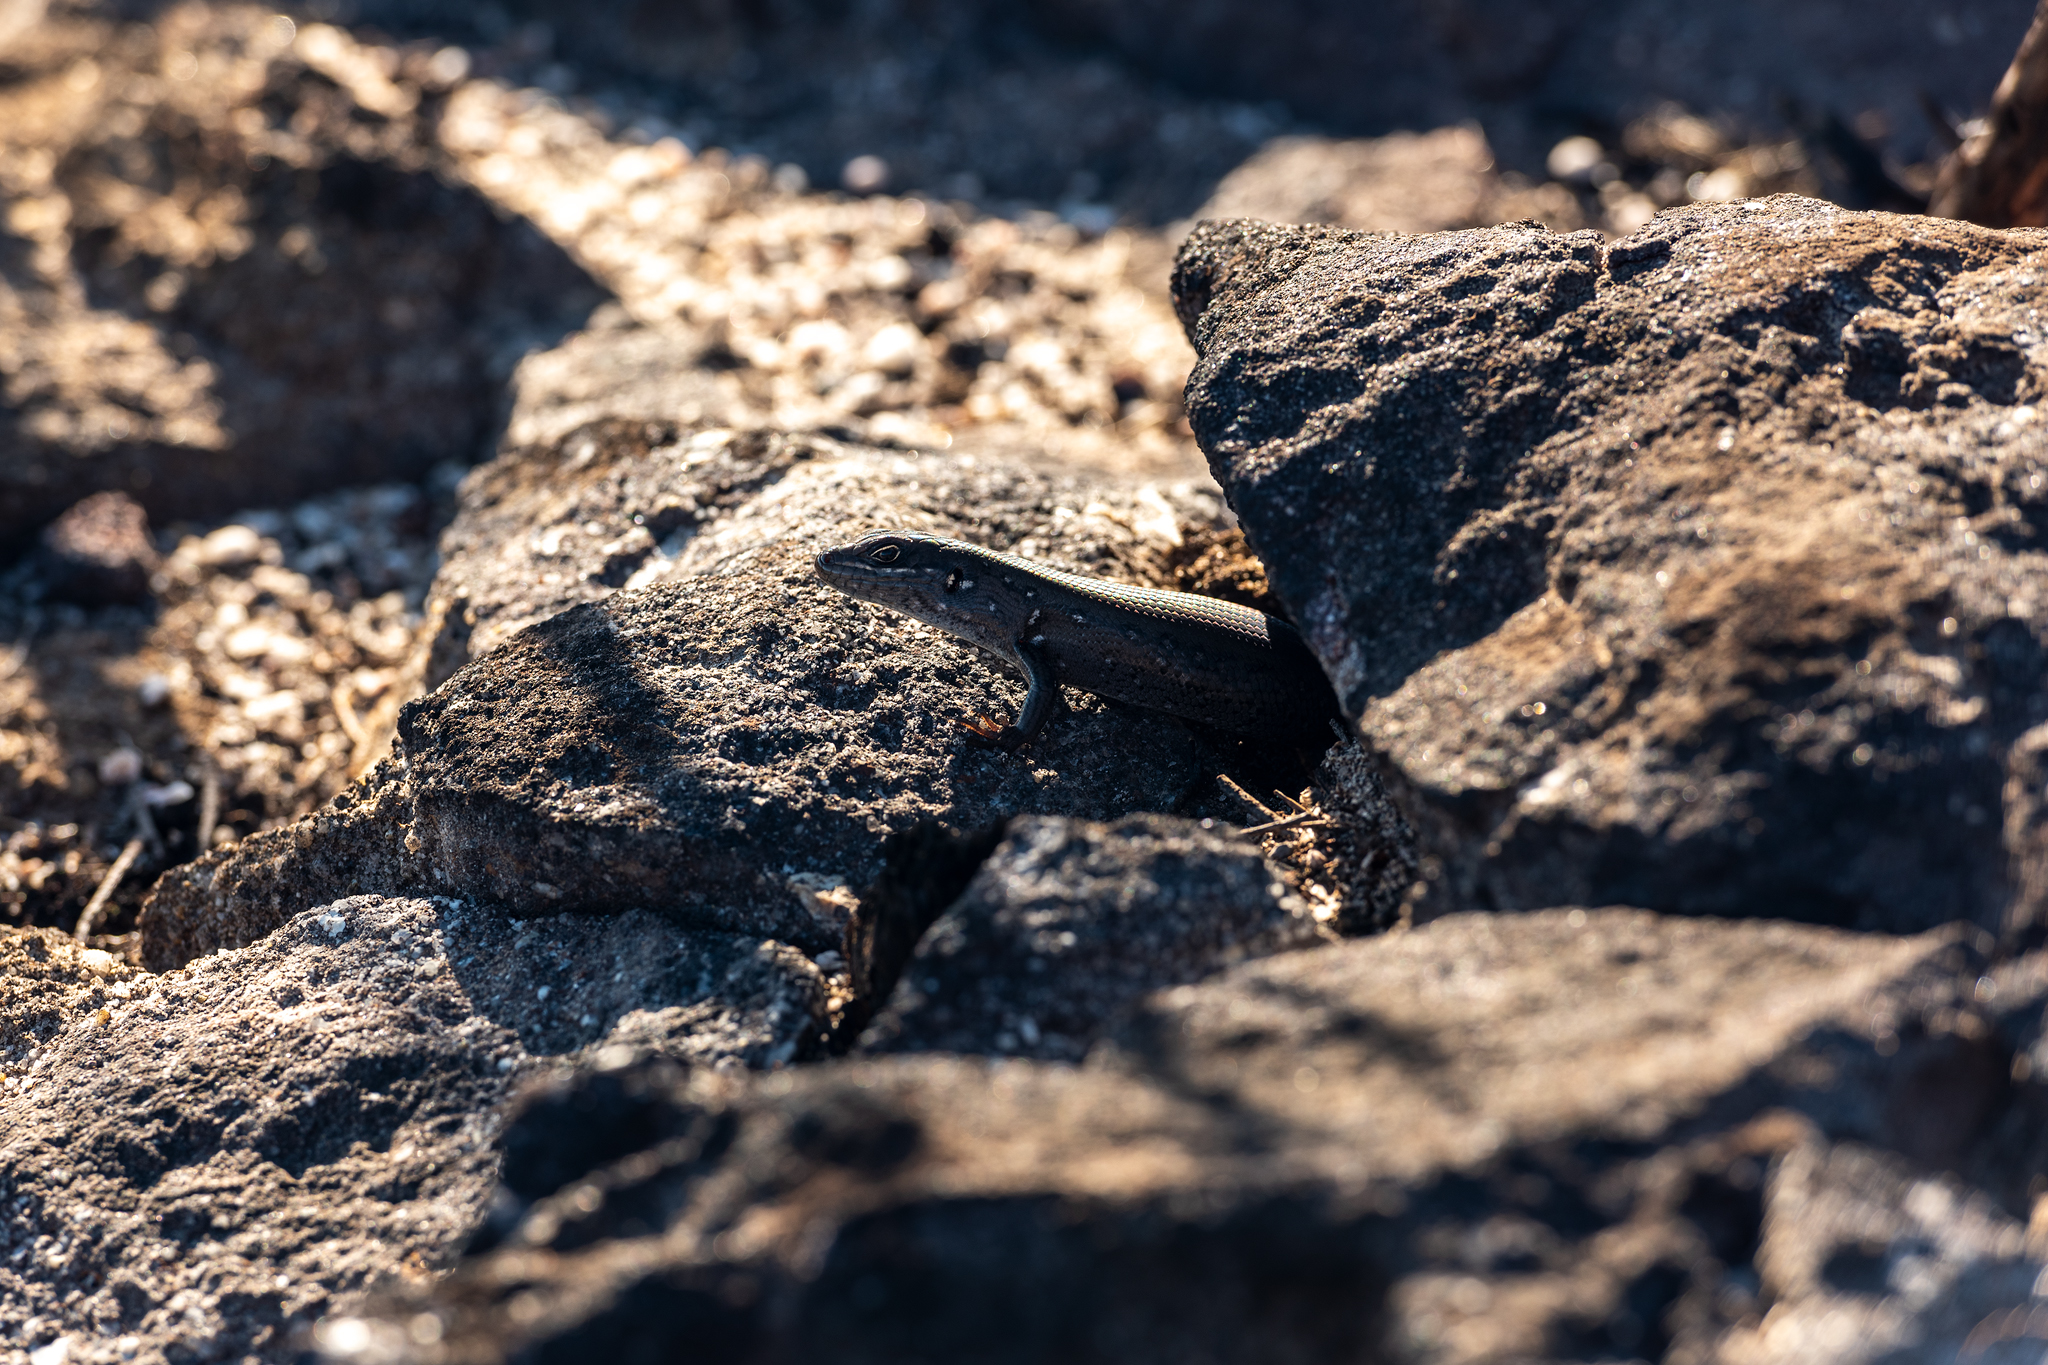 Lizard emerges after the bushfires